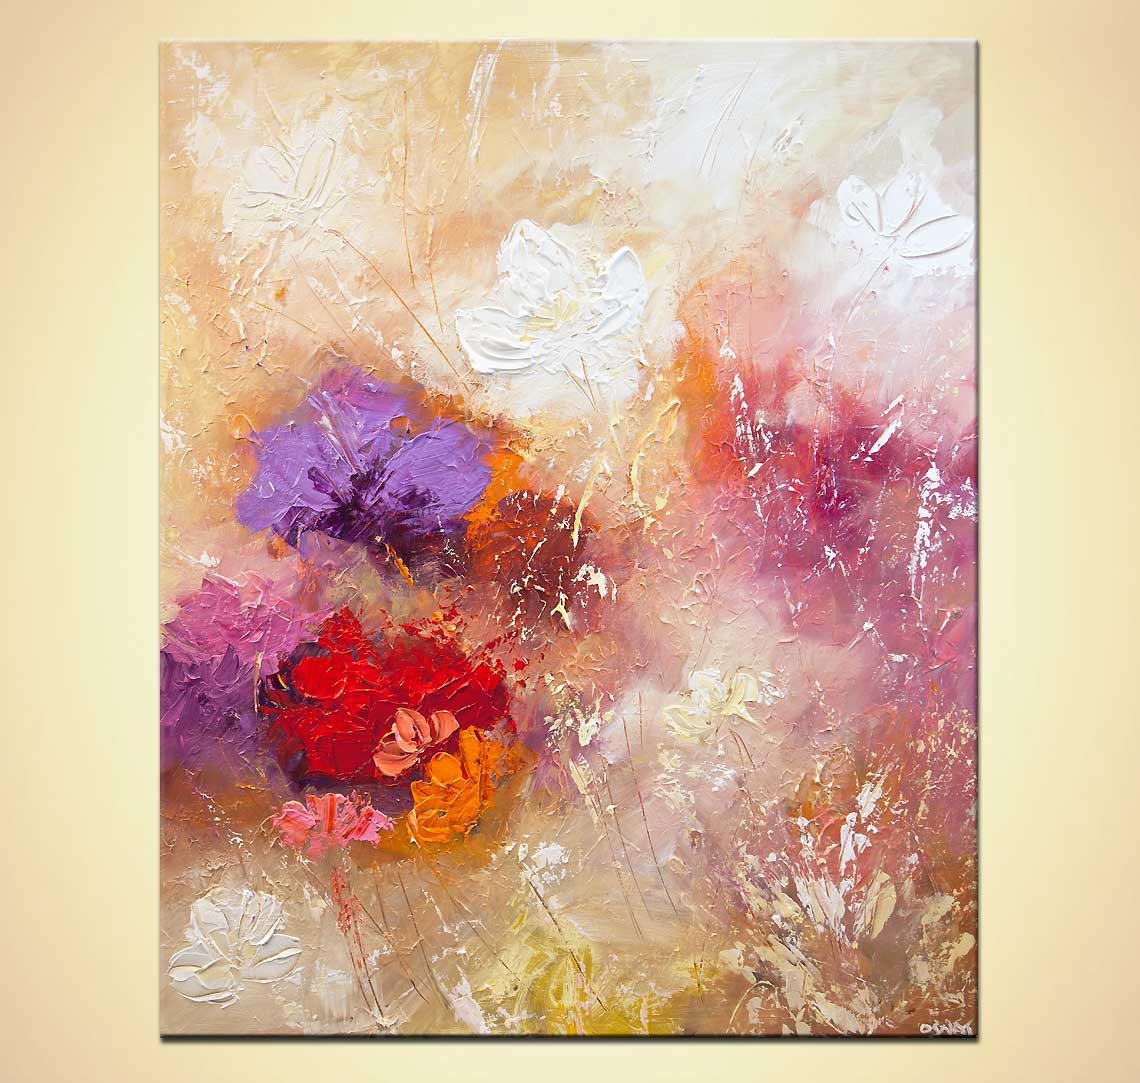 Modern floral abstract painting textured abstract flowers for Modern flower paintings